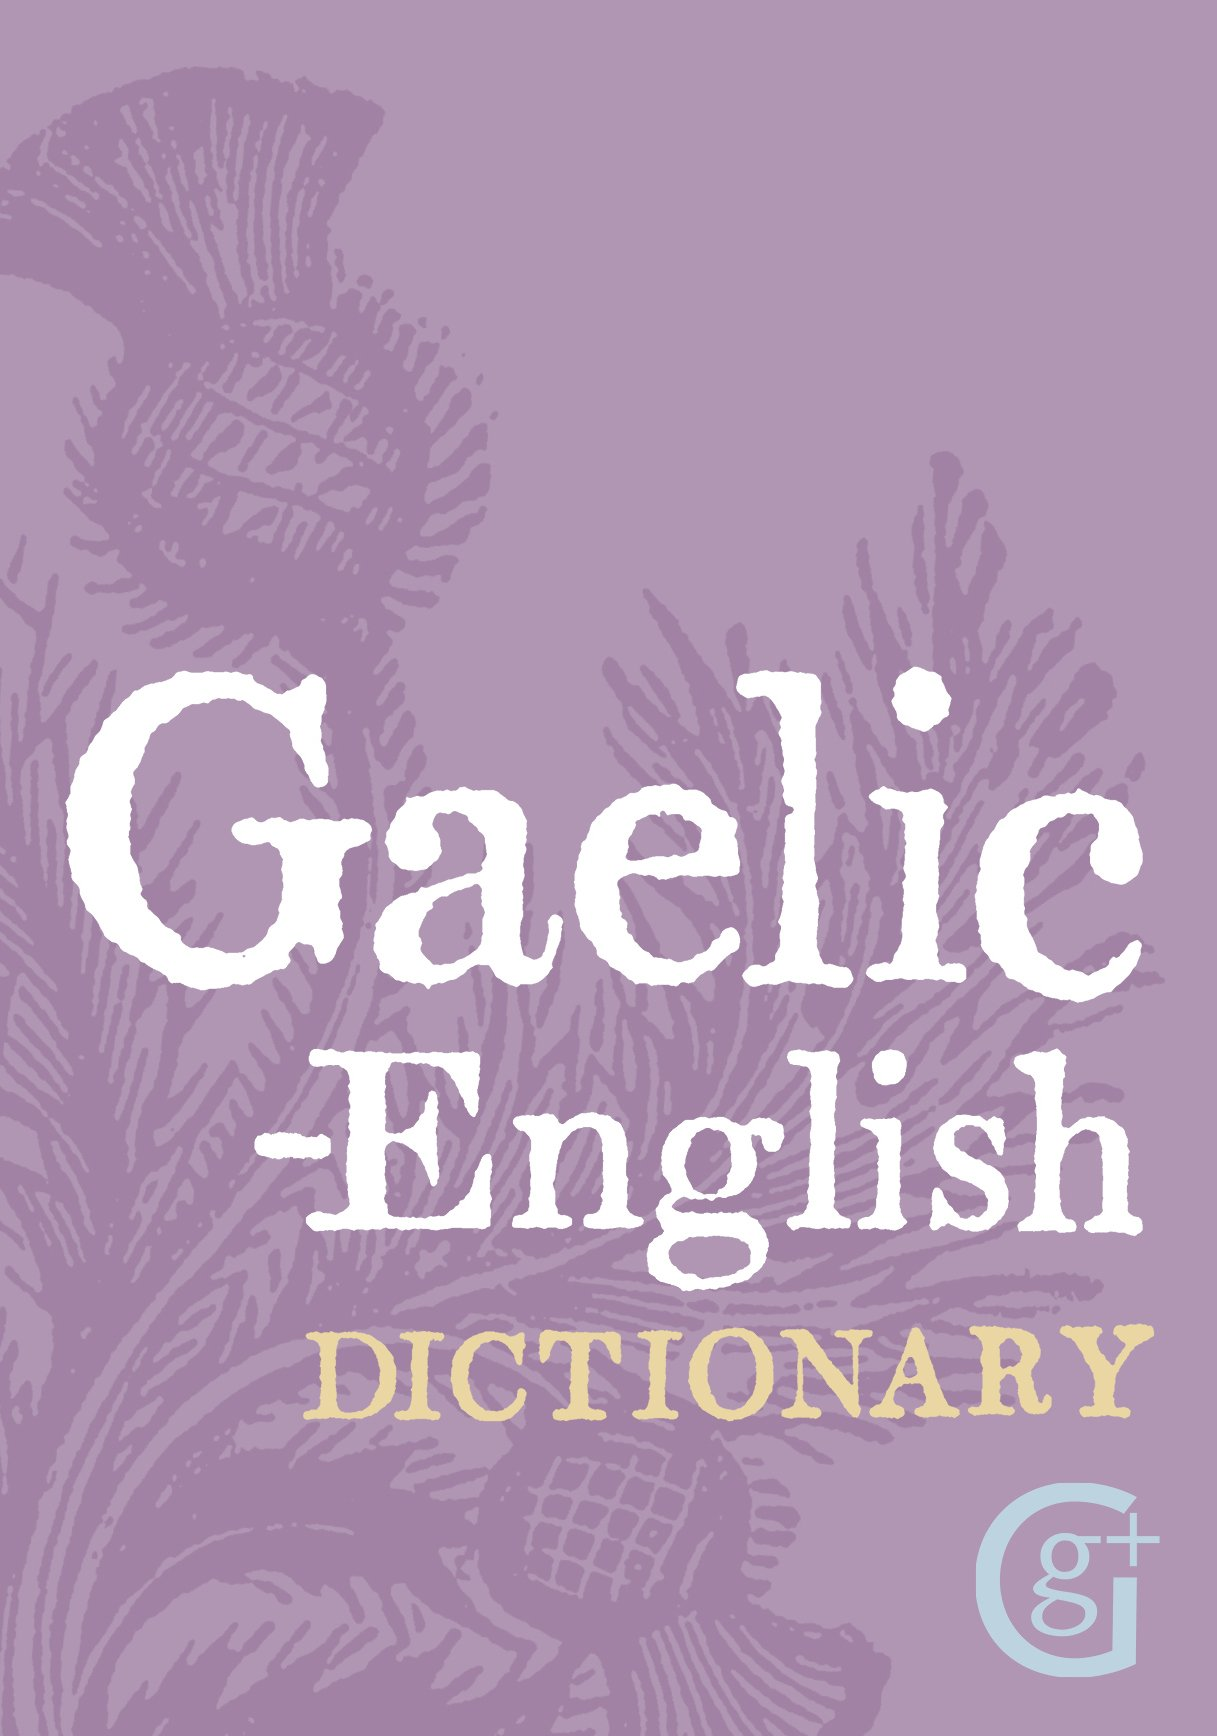 Gaelic - English Dictionary (English and Scots Gaelic Edition) ebook